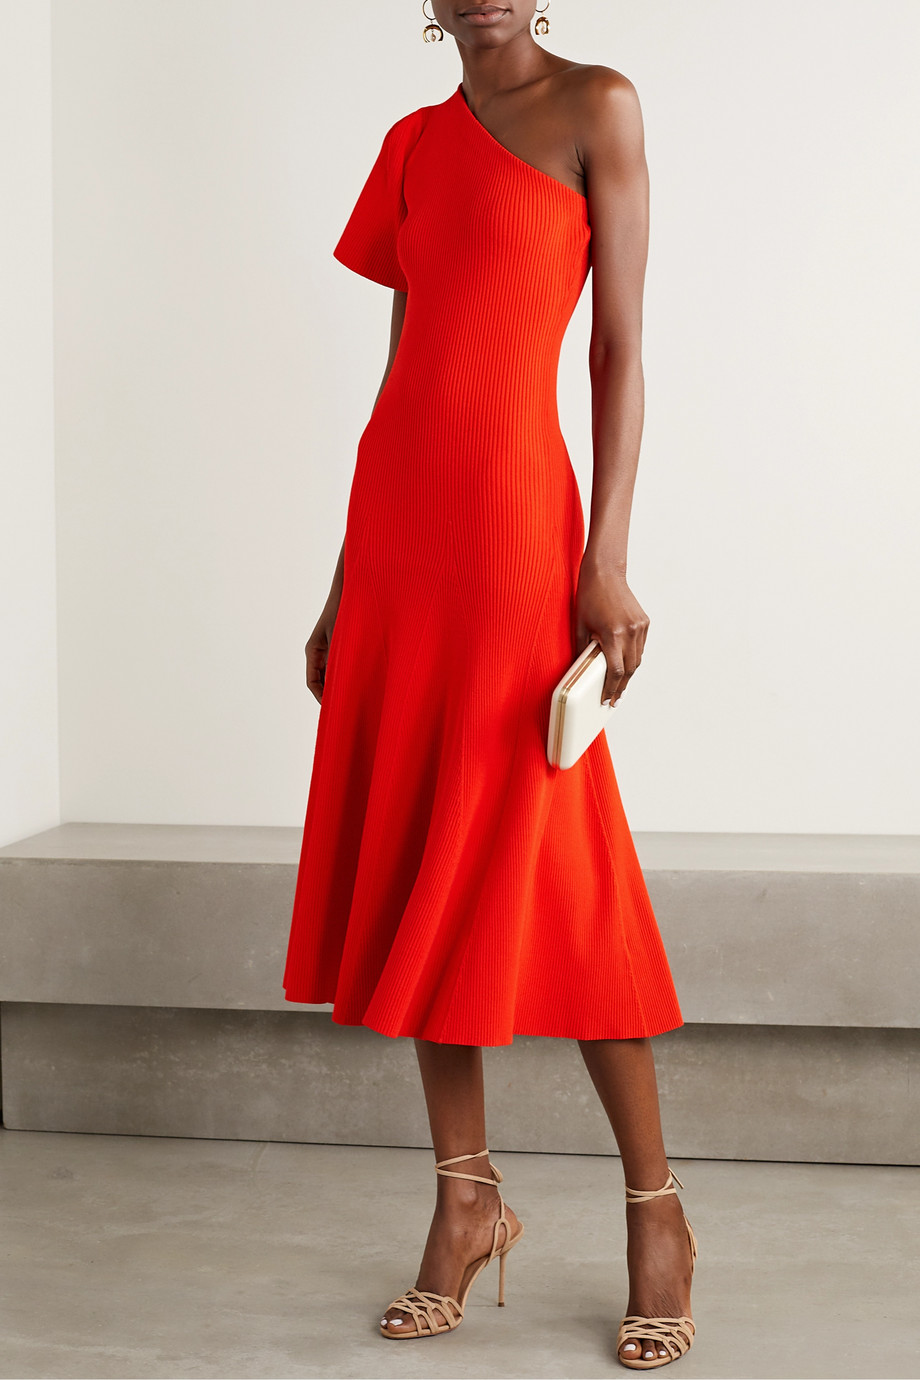 Red One Sleeve Fluted Ribbed Knit Midi Dress Carolina Herrera Knit Midi Dress Dresses Knit Midi [ 1380 x 920 Pixel ]